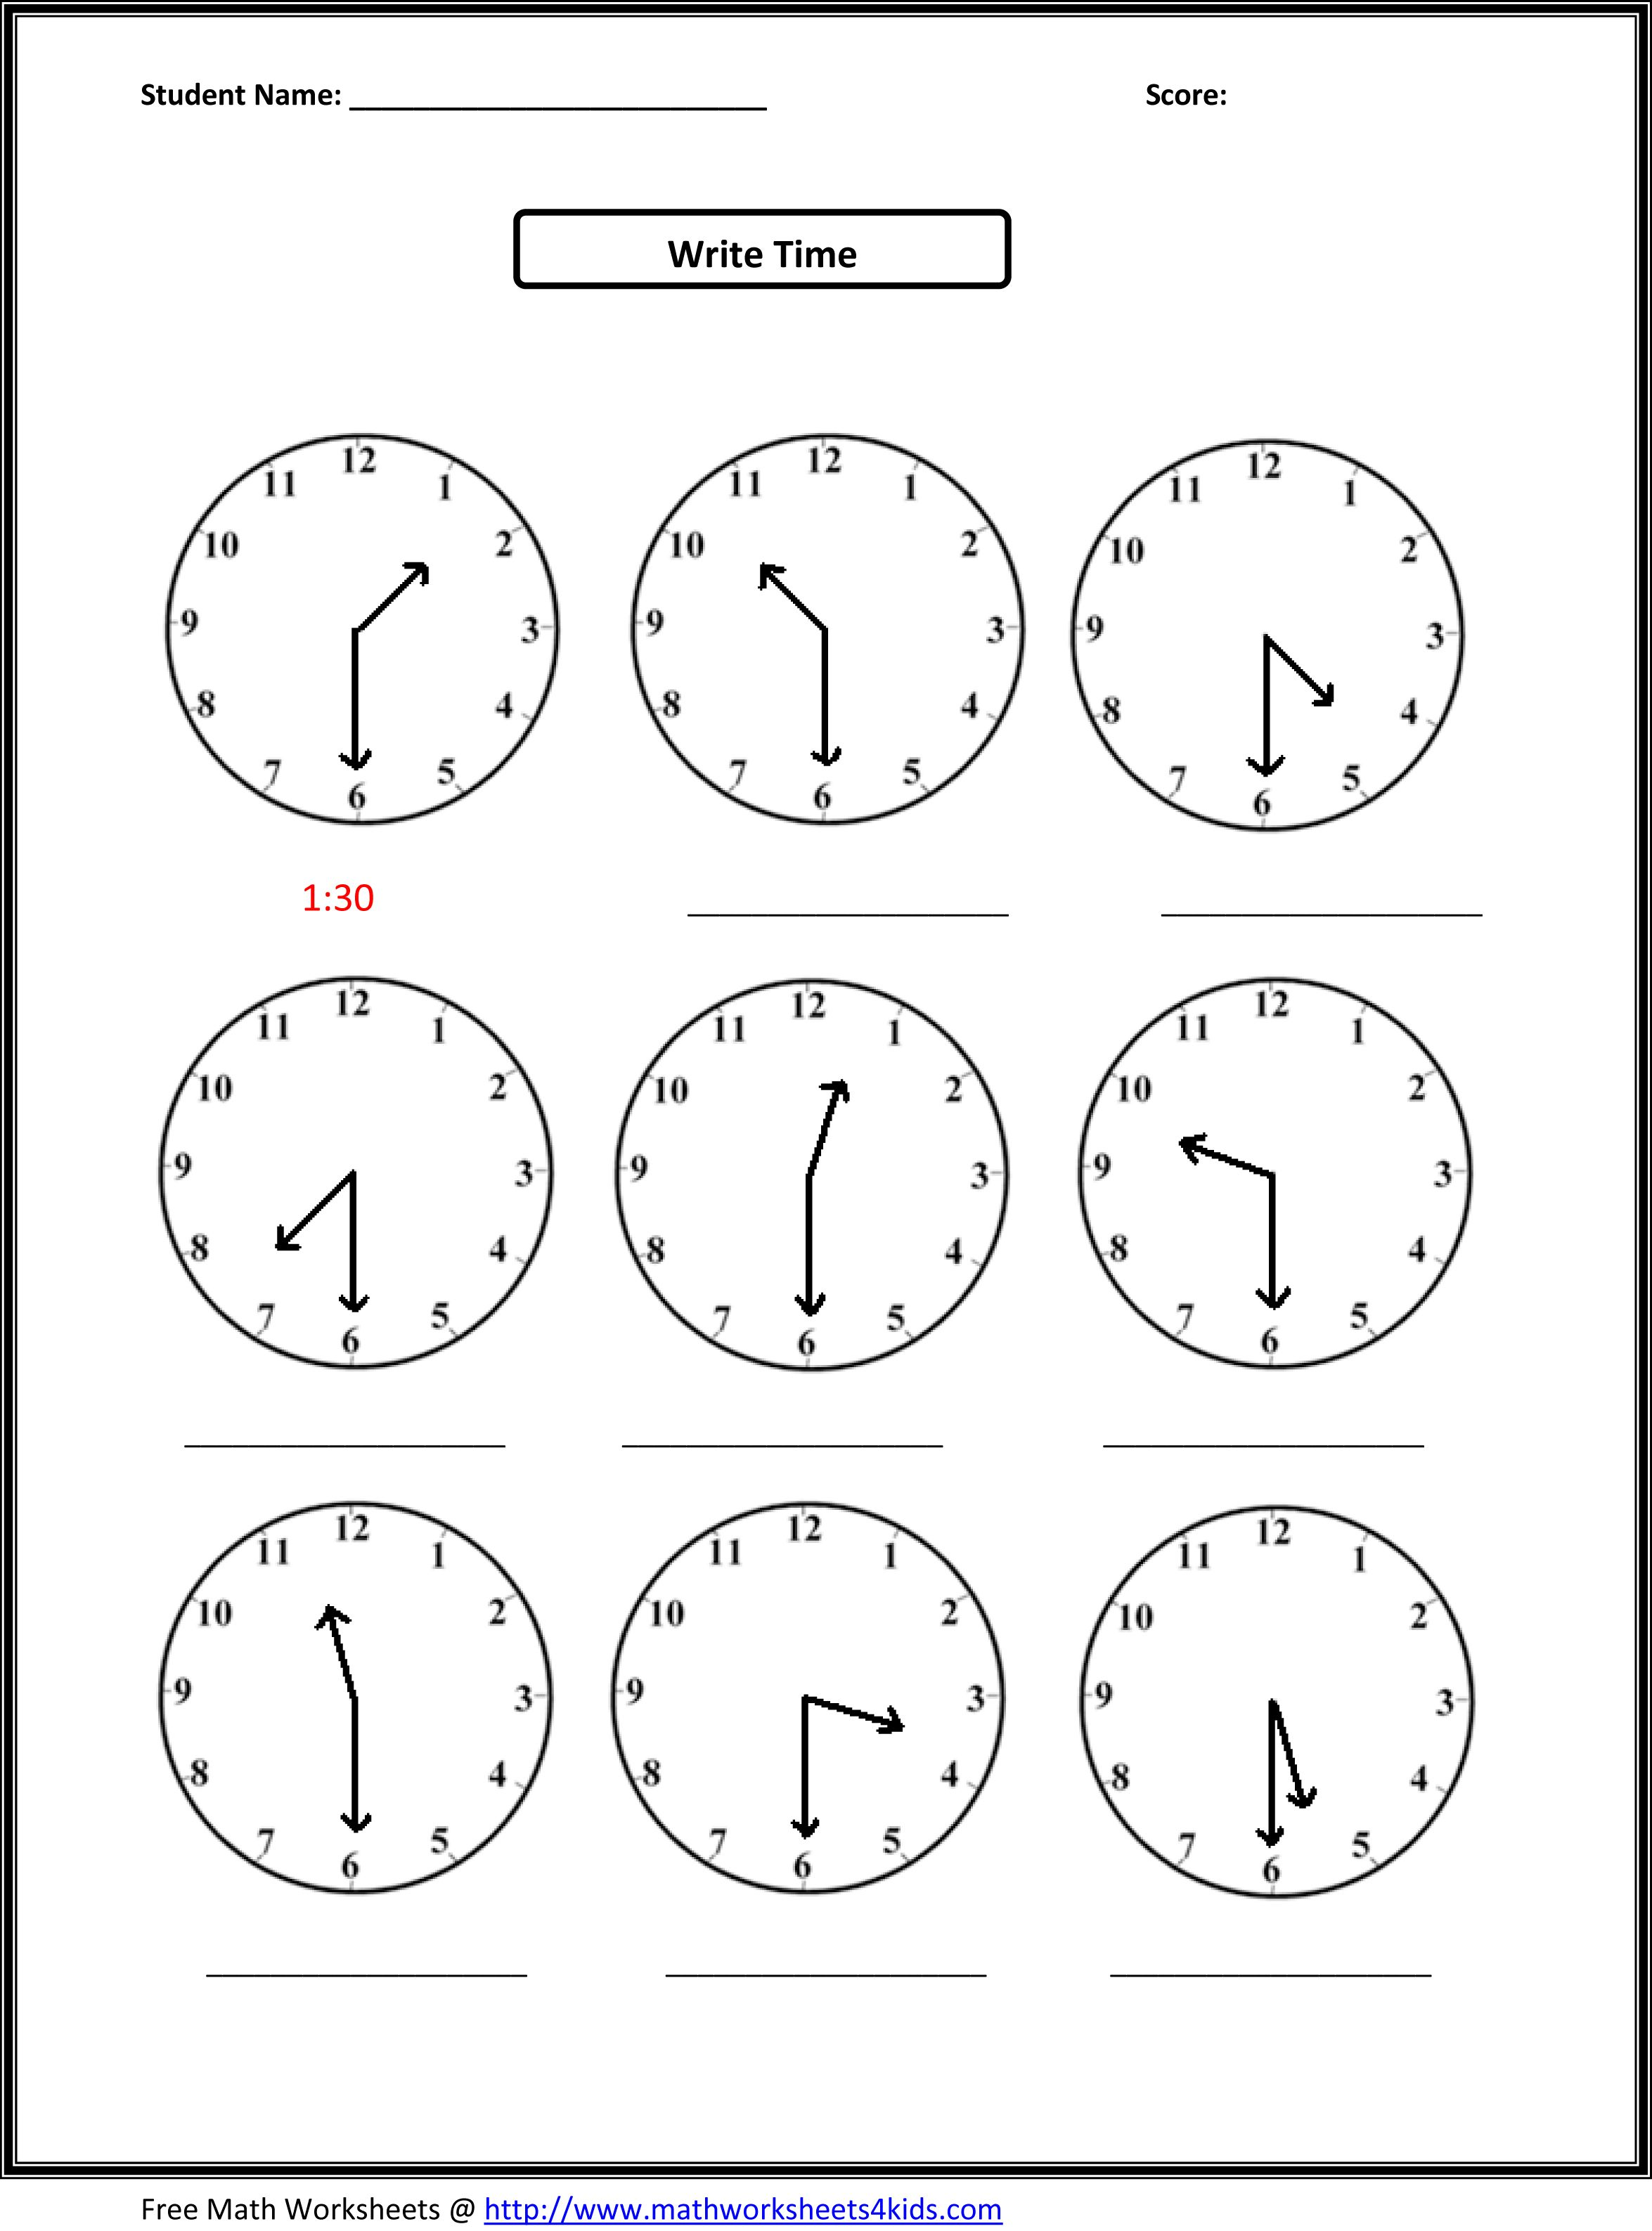 Weirdmailus  Pleasing Worksheet On Time For Grade   Reocurent With Handsome Free Printable Telling Time Worksheets Nd Grade  Reocurent With Attractive Combination Worksheet With Answers Also Safe Touching For Children Worksheets In Addition Marriage Building Worksheets And Were And Where Worksheets As Well As Integer Addition And Subtraction Worksheet Additionally Coin Values Worksheet From Reocurentcom With Weirdmailus  Handsome Worksheet On Time For Grade   Reocurent With Attractive Free Printable Telling Time Worksheets Nd Grade  Reocurent And Pleasing Combination Worksheet With Answers Also Safe Touching For Children Worksheets In Addition Marriage Building Worksheets From Reocurentcom